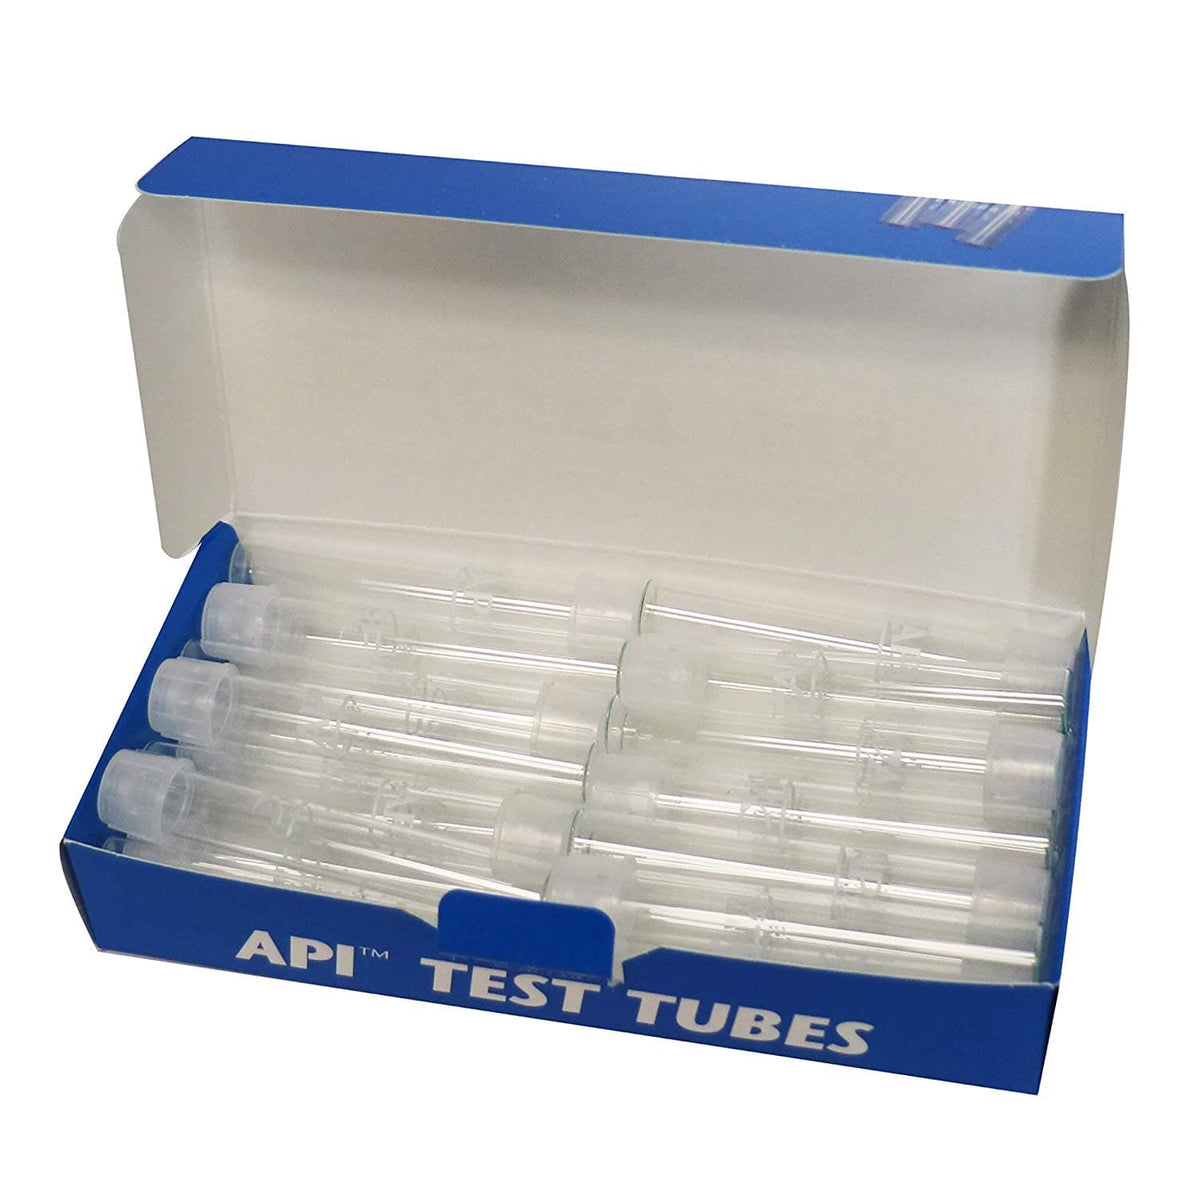 Replacement API Test Tubes – set of 4 - Aquaponics For Life